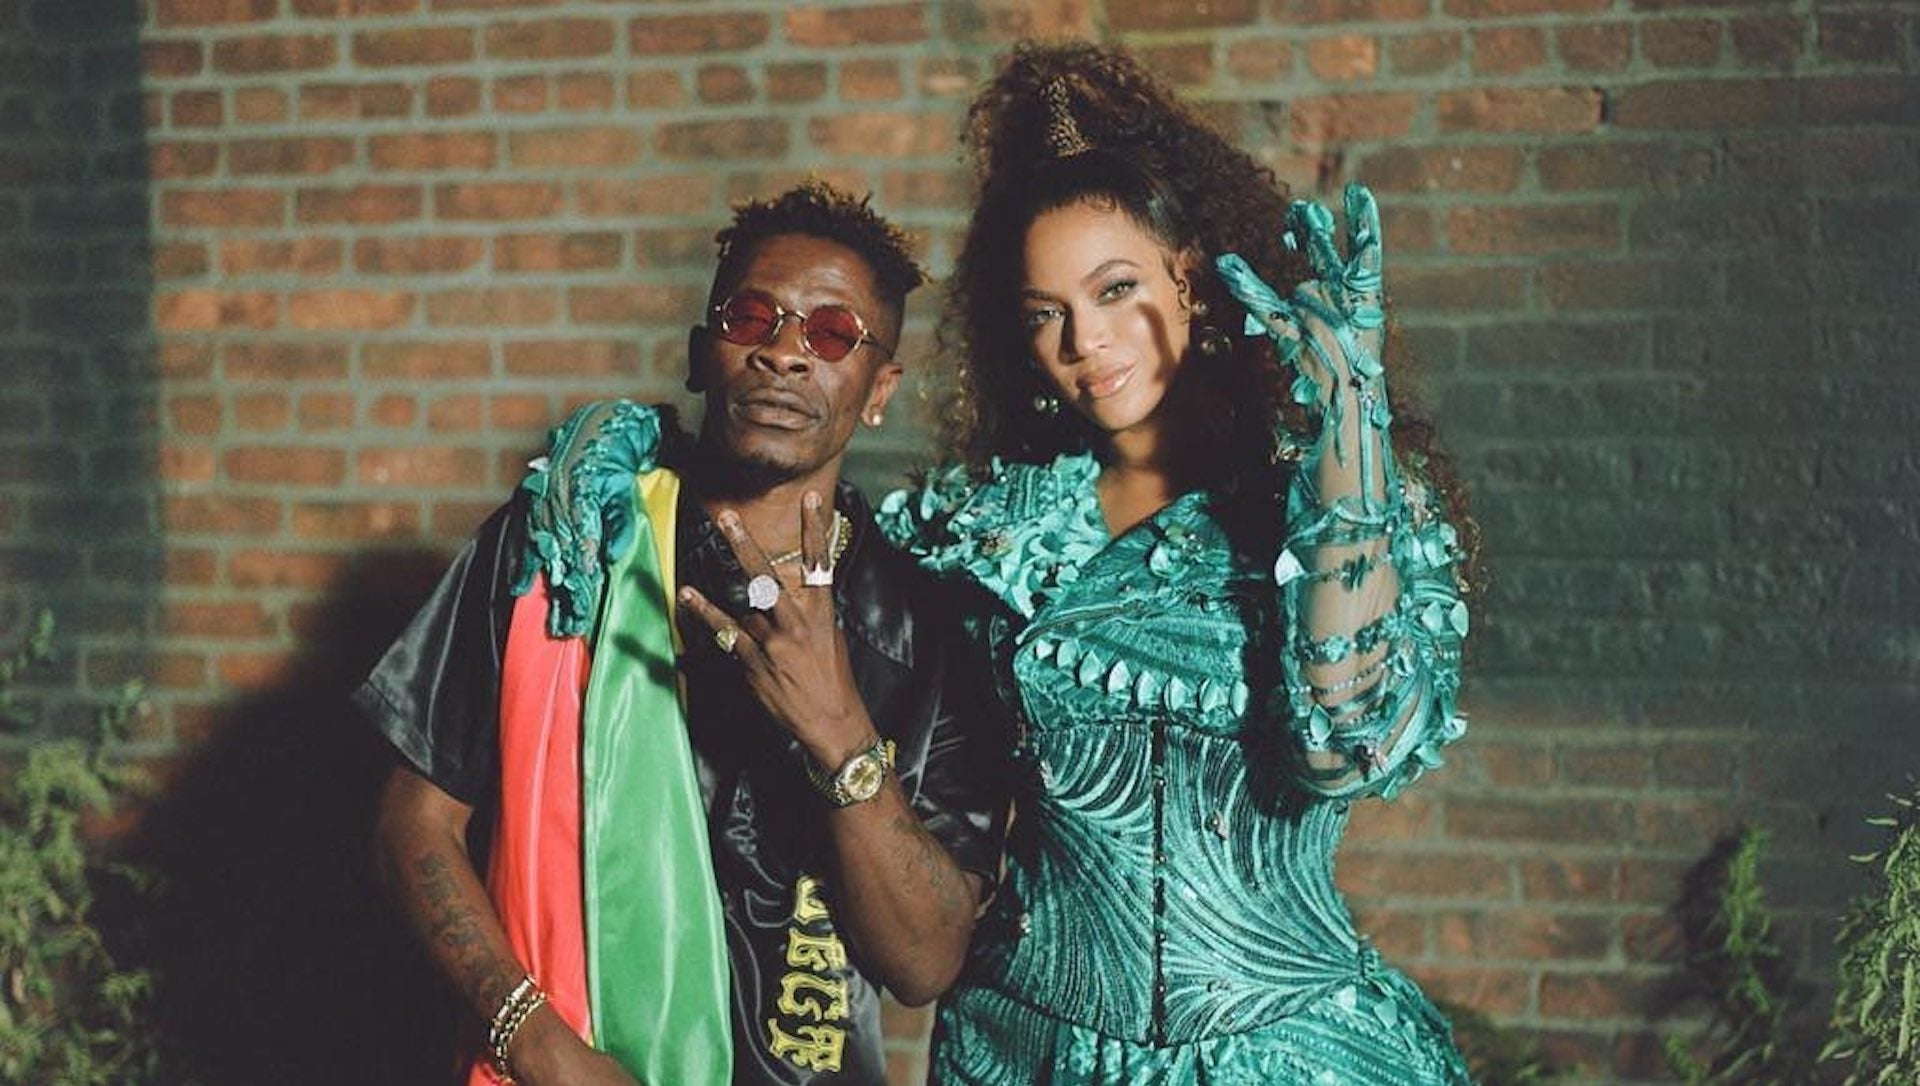 Shatta Wale Curates 10 Songs Dripped In Black Excellence You Should Stream Right Now